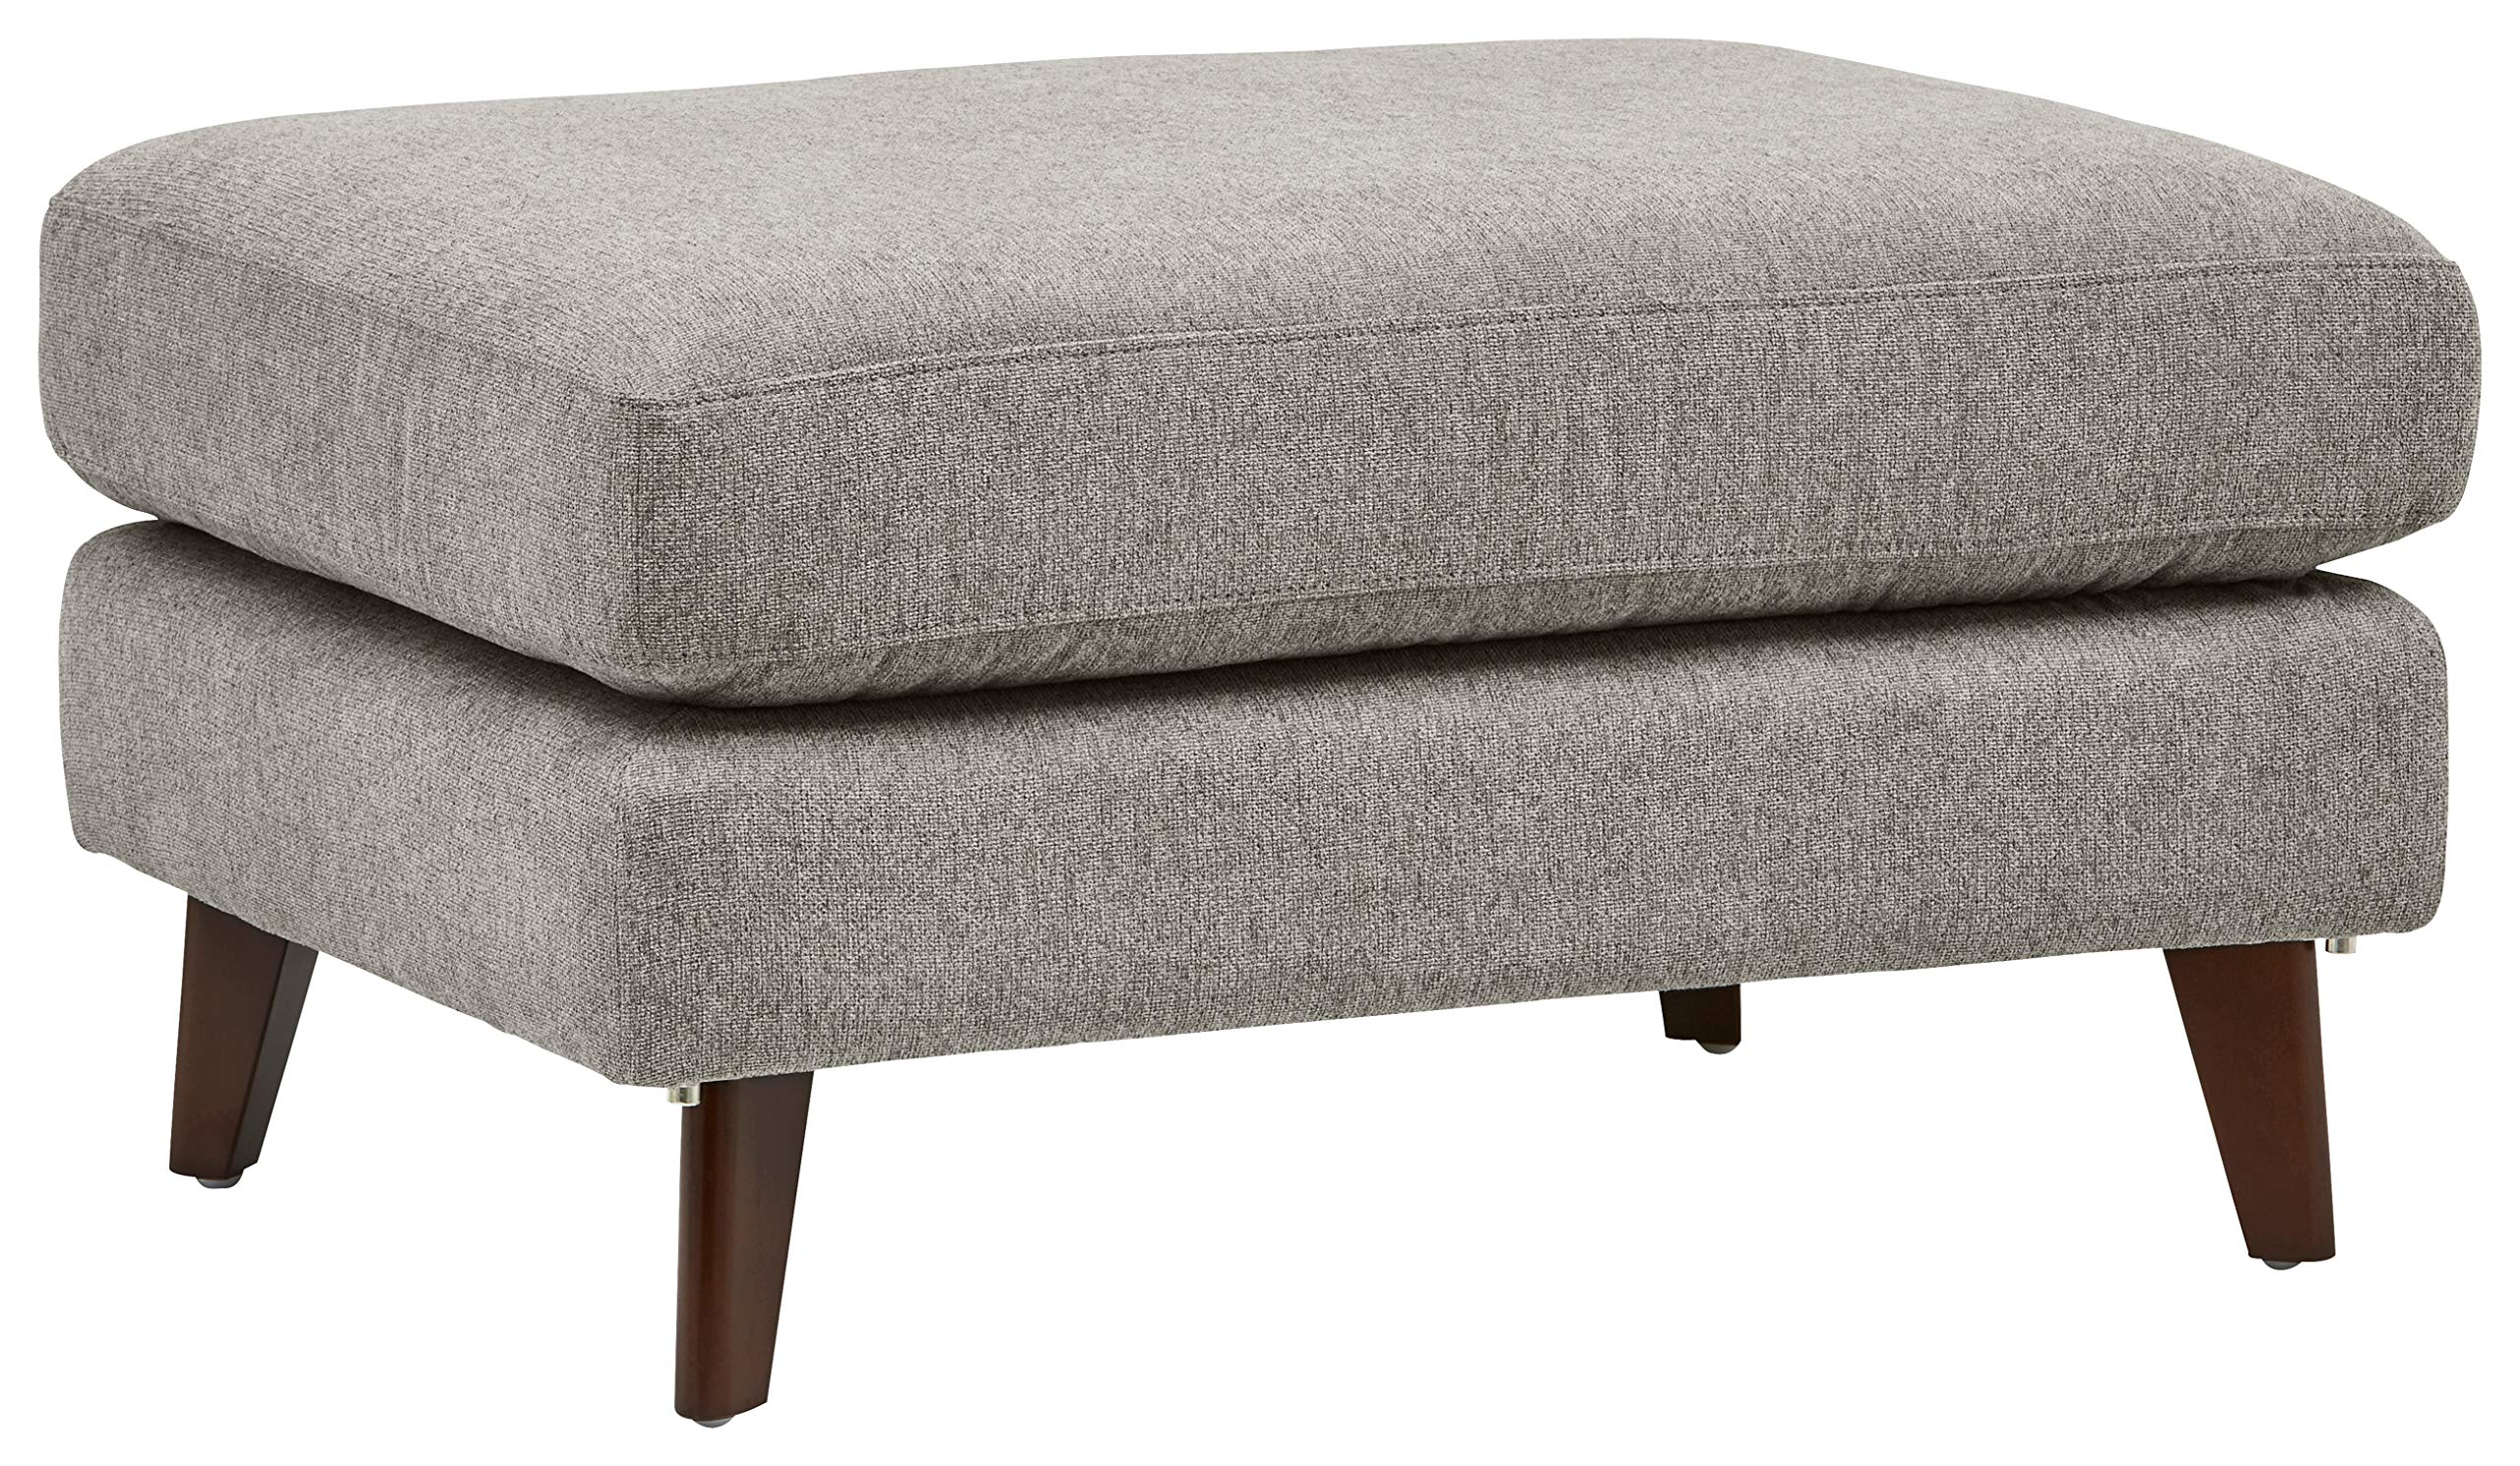 Rivet Sloane Mid Century Tufted Modern Accent Chair